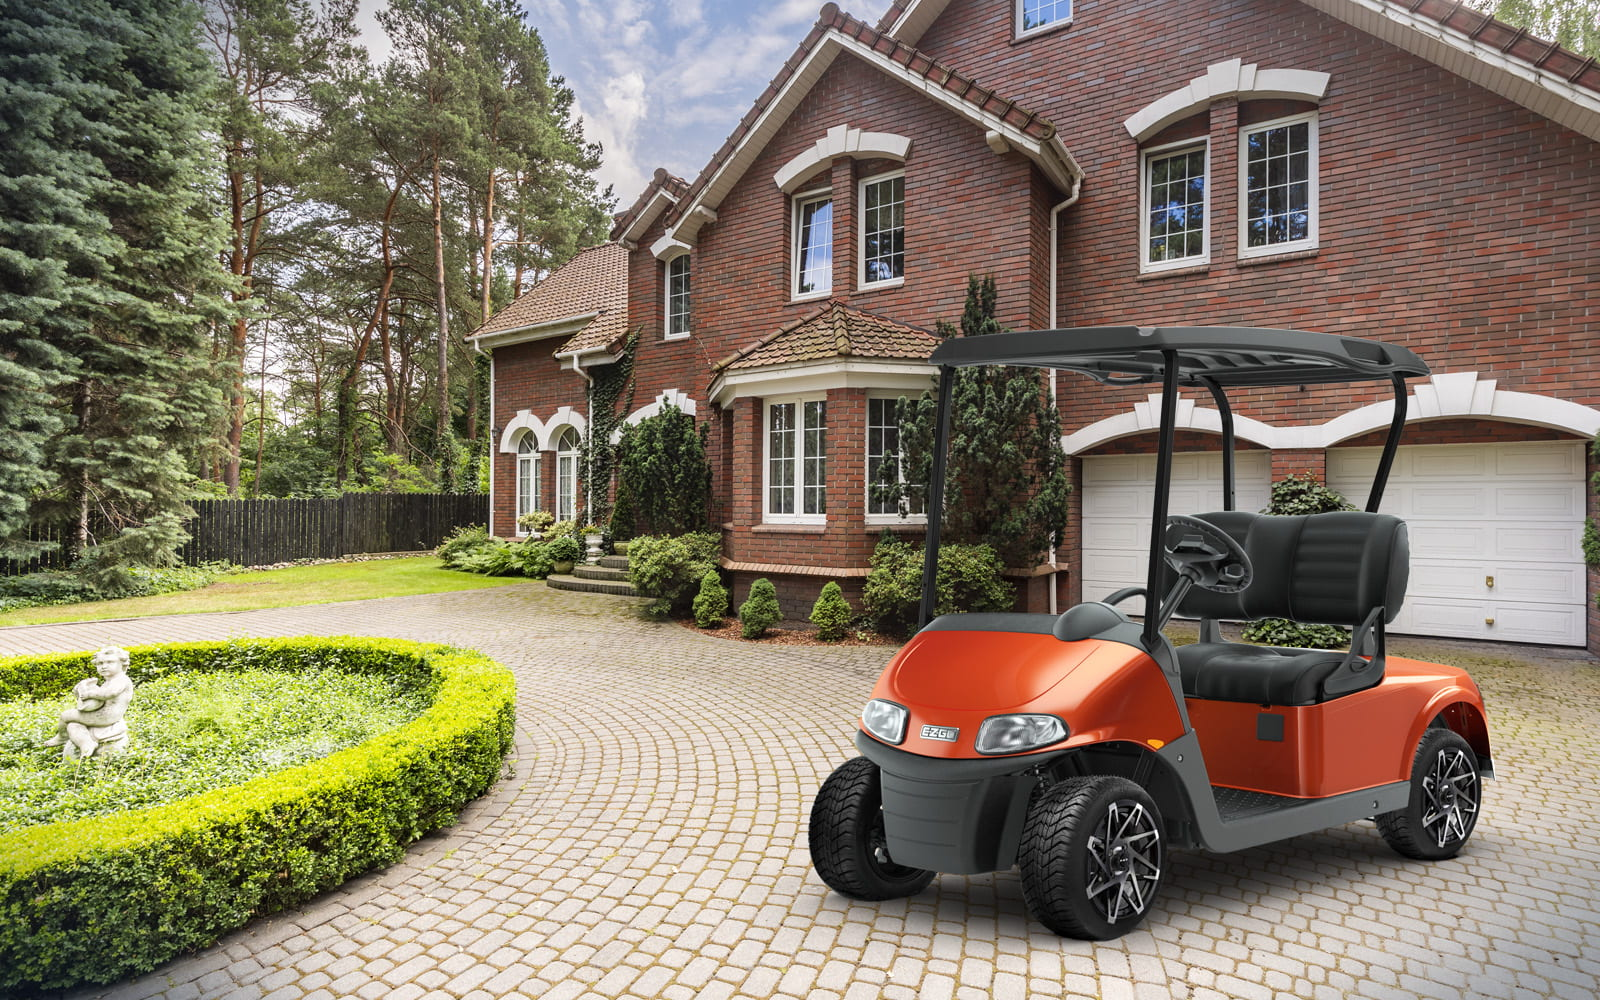 E-Z-GO Tangerine Freedom RXV Electric Lithium Golf Cart 2 Passenger